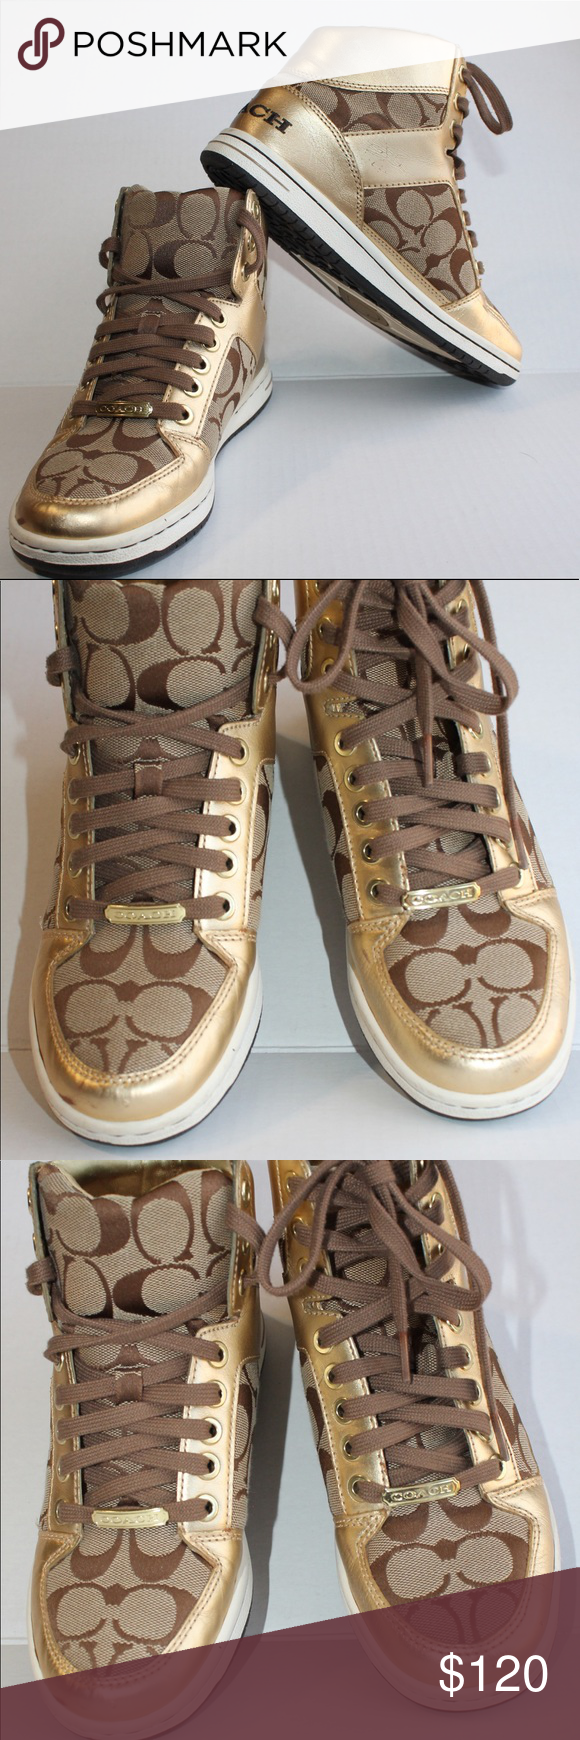 Coach Norra 6M gold sneakers Spot on toe Coach Shoes Sneakers